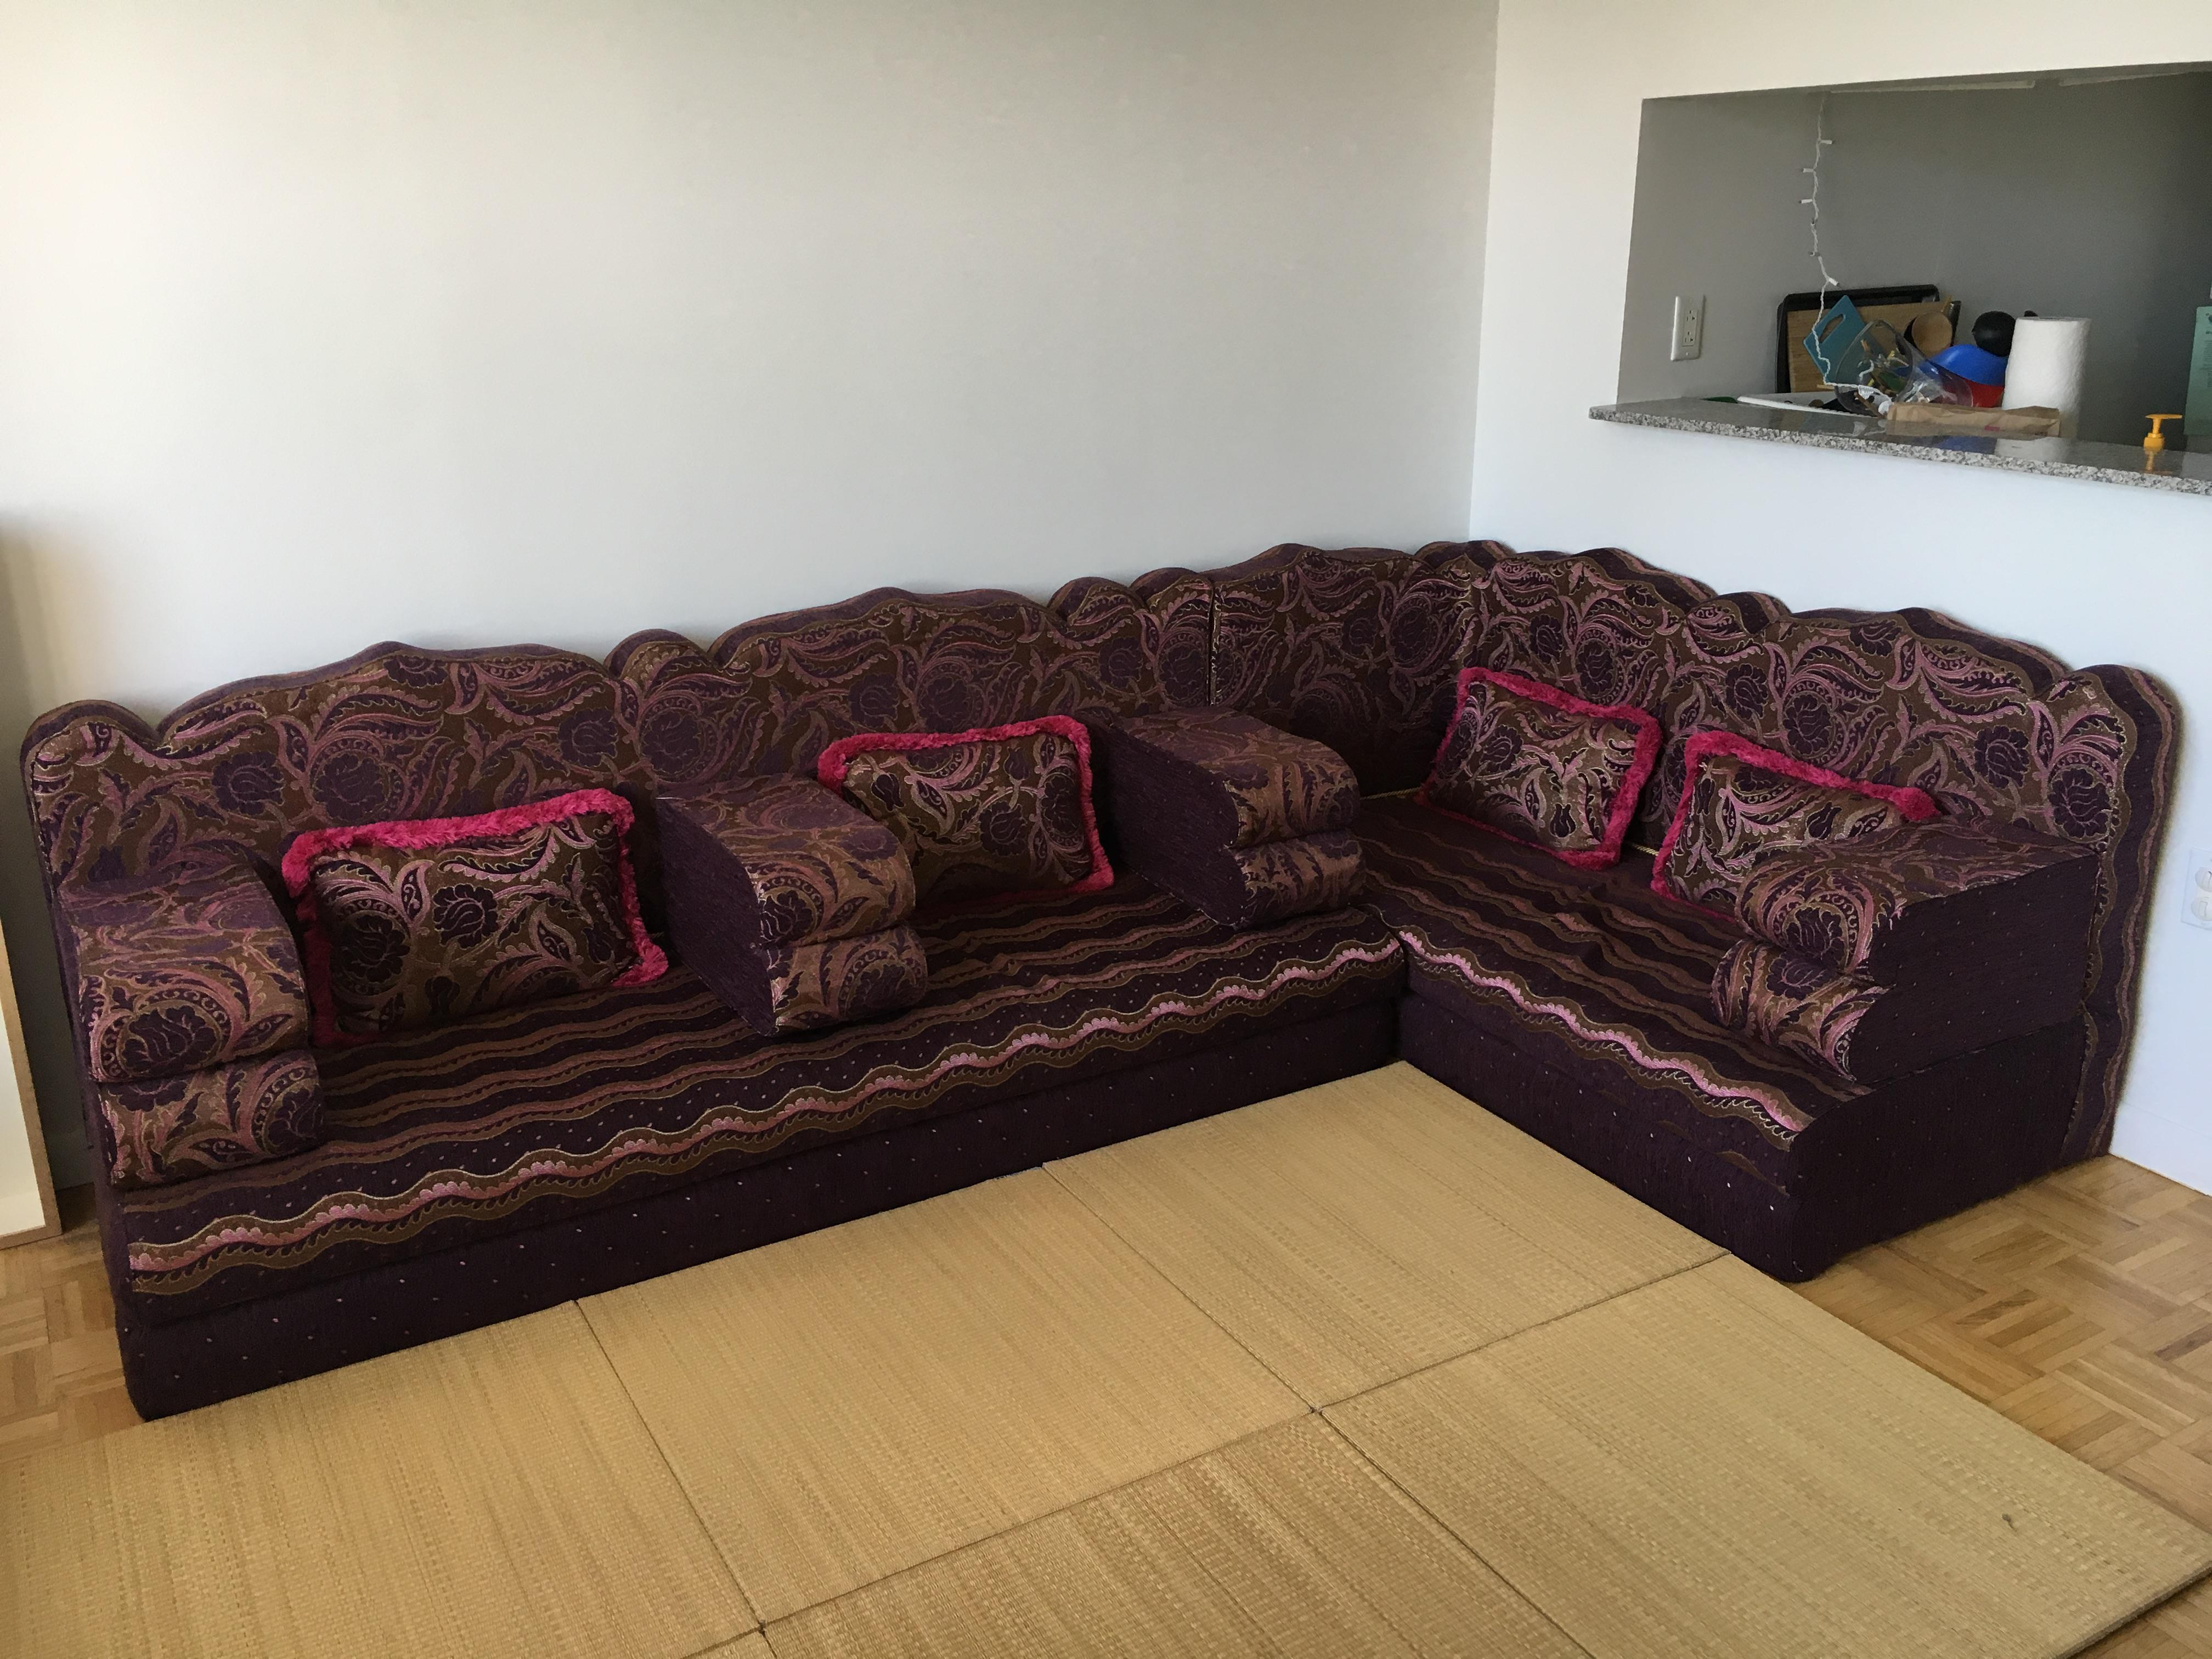 Abu Akram Sonu0027s Middle Eastern Dark Purple Sectional Sofa   Image 2 ...